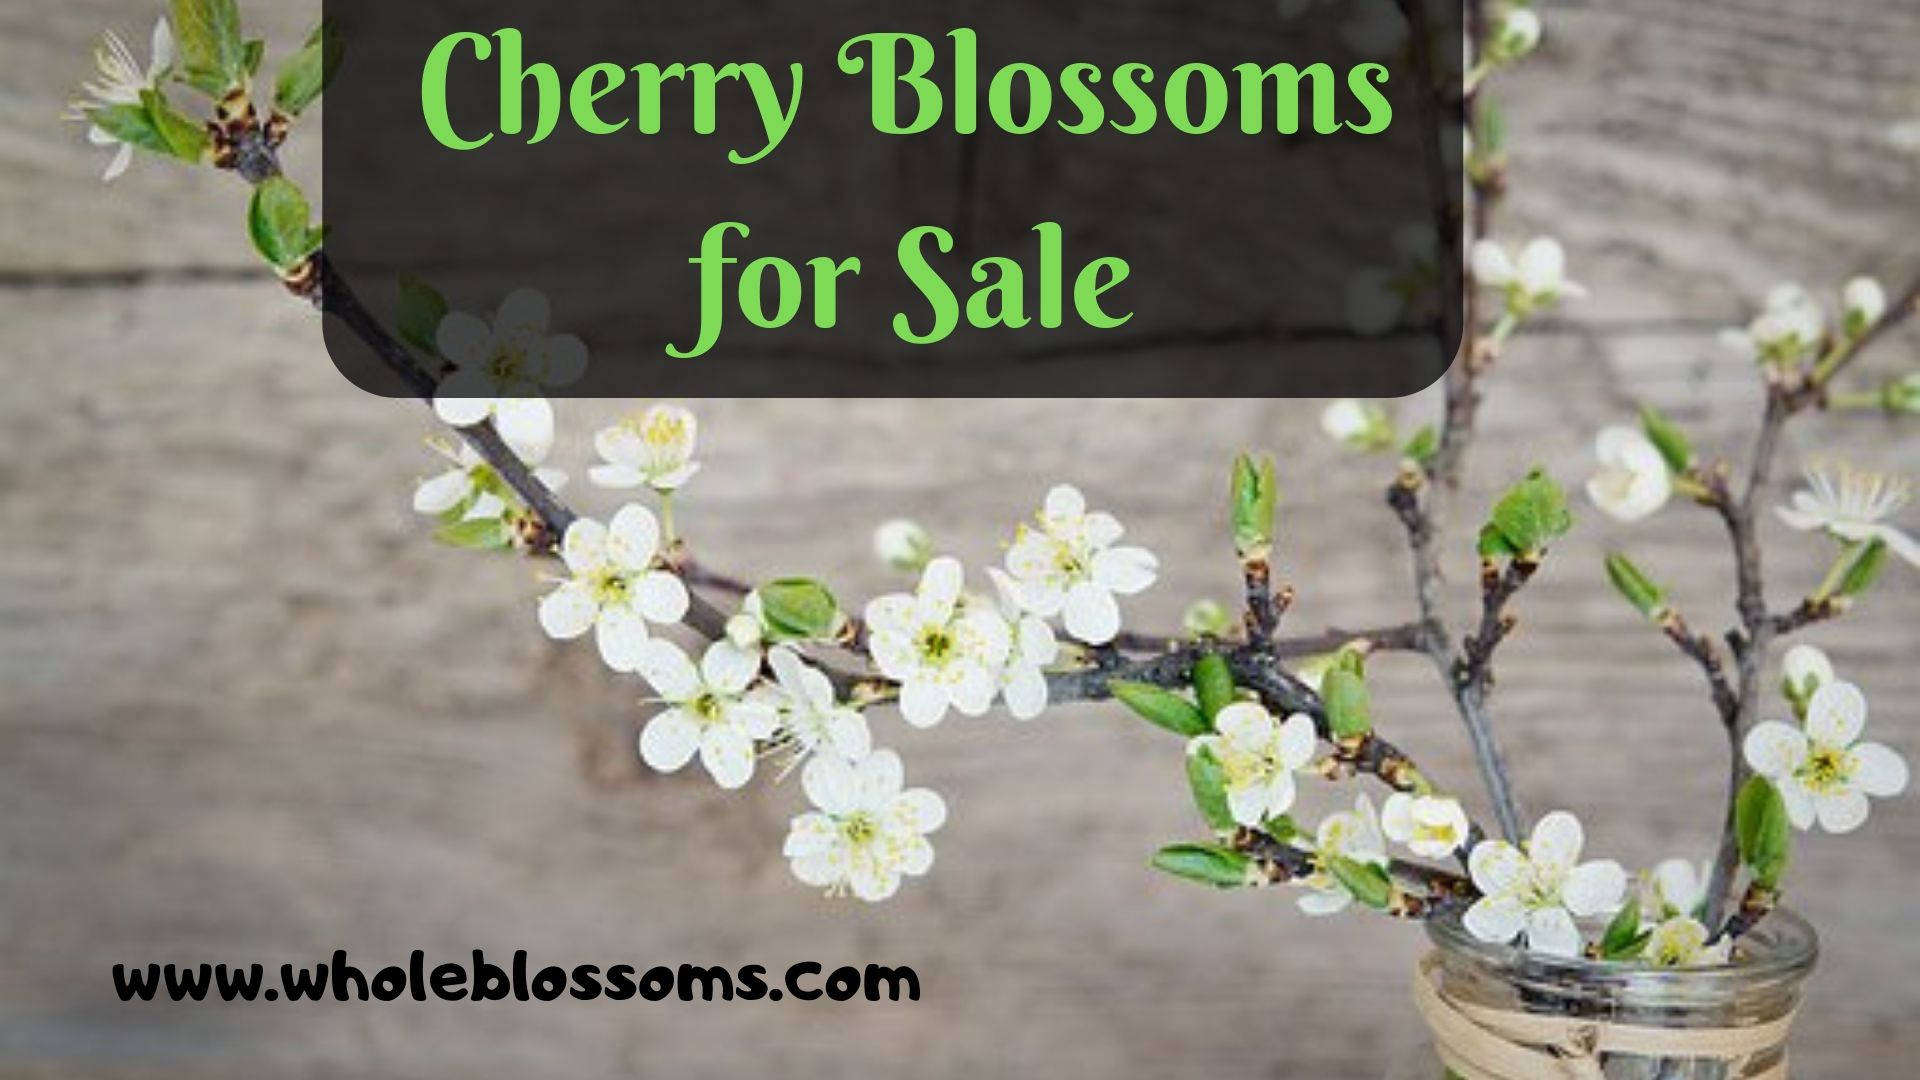 Select And Buy Cherry Blossom Branches From Whole Blossoms Cherry Blossom Branch Blossom Cherry Blossom